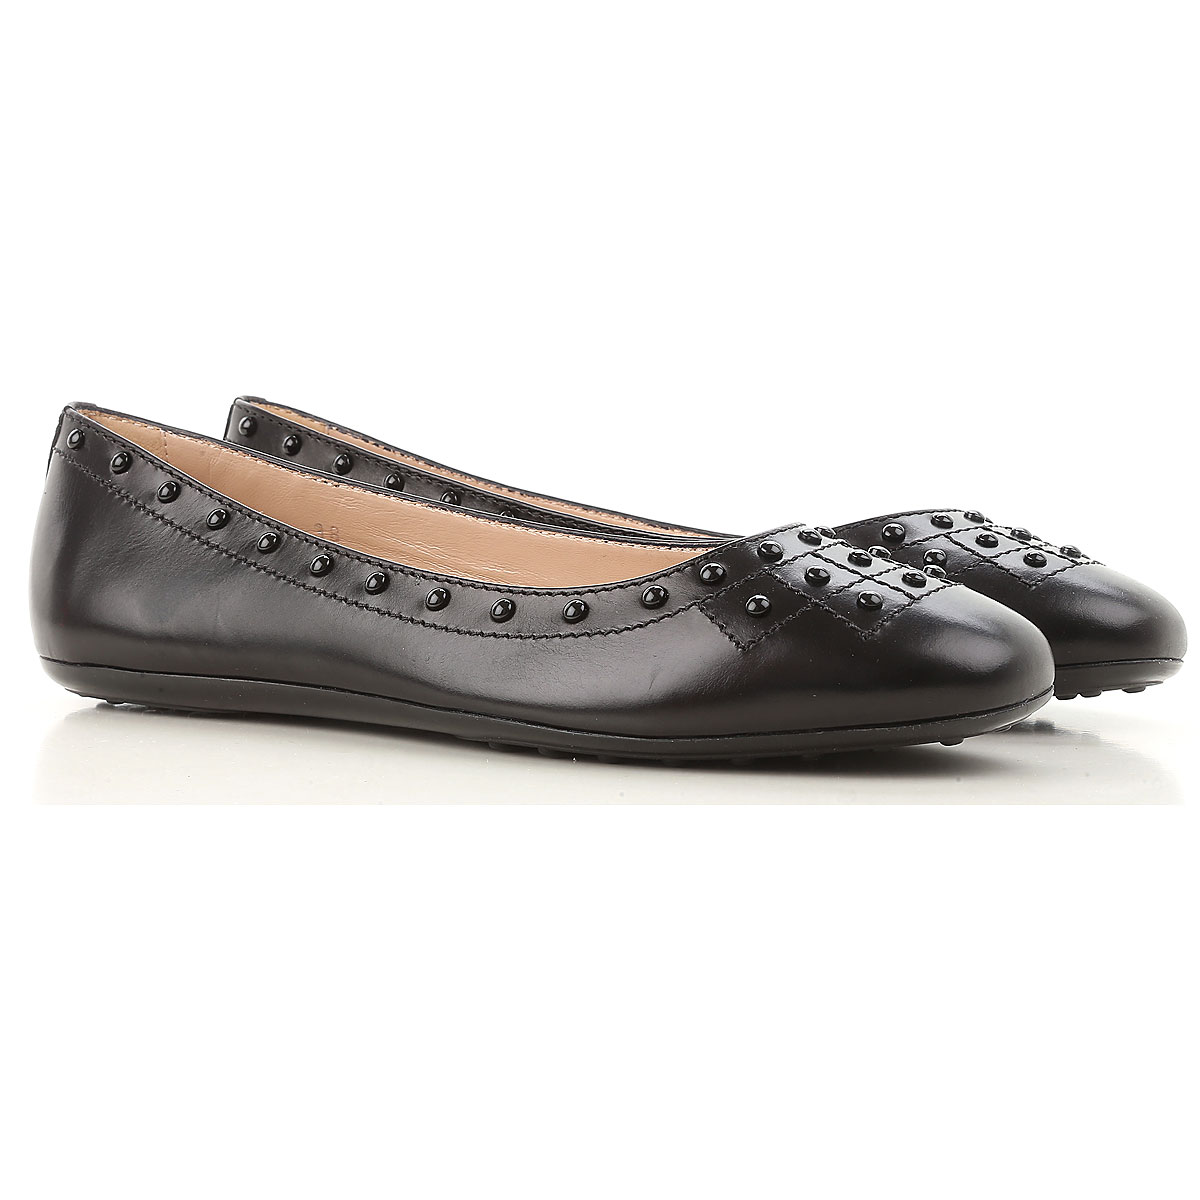 Image of Tods Ballet Flats Ballerina Shoes for Women On Sale, Black, Leather, 2017, 8 8.5